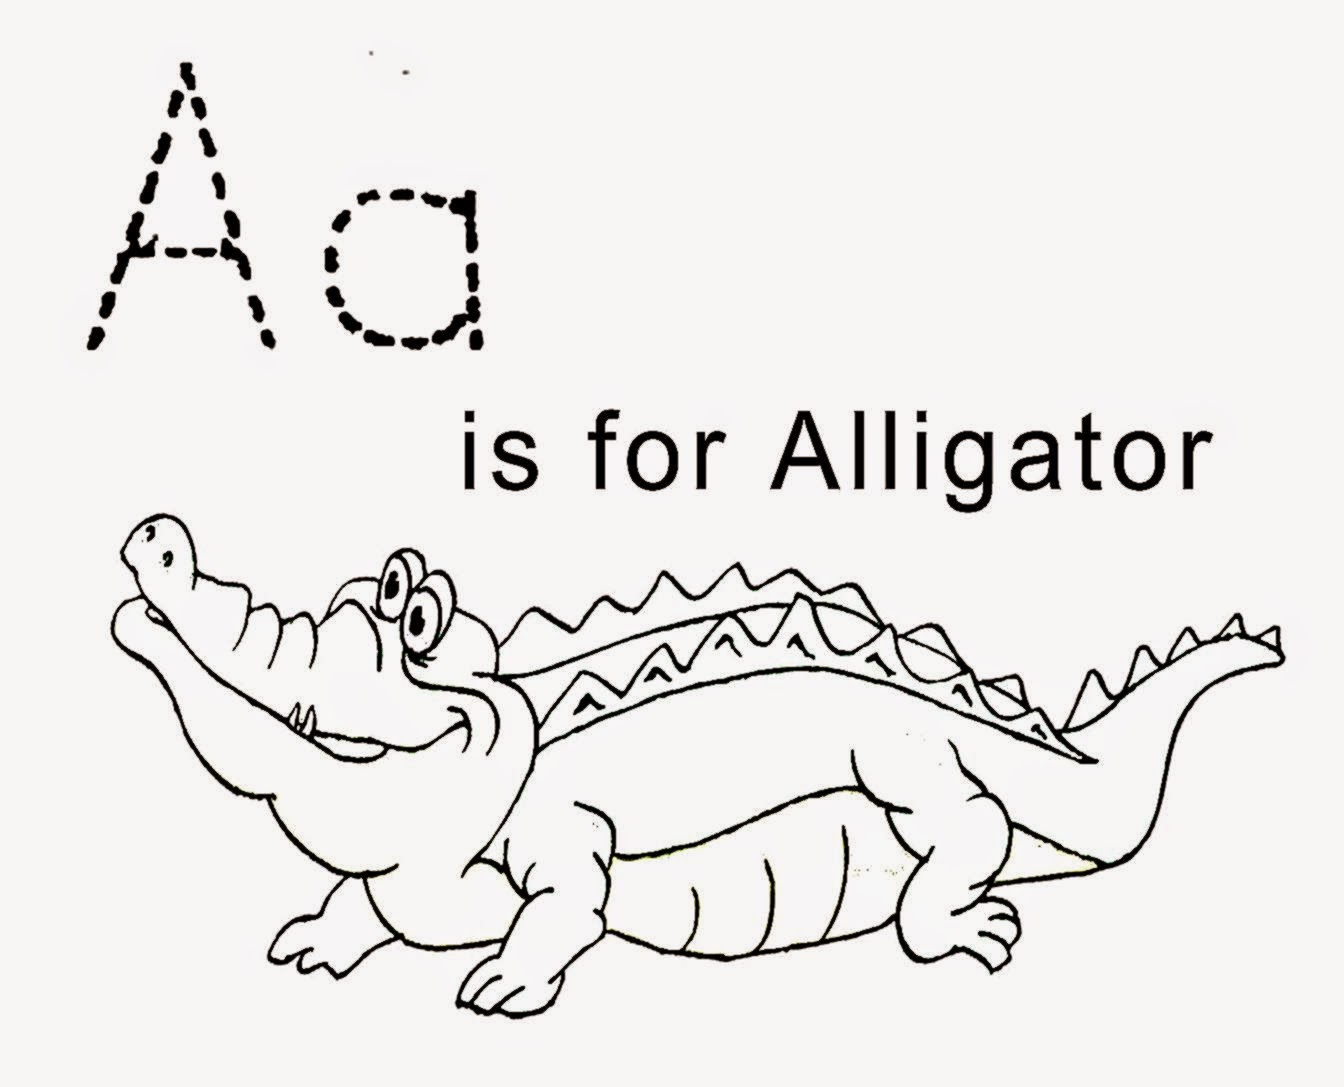 Free Coloring Sheet Alligator Coloring Sheet